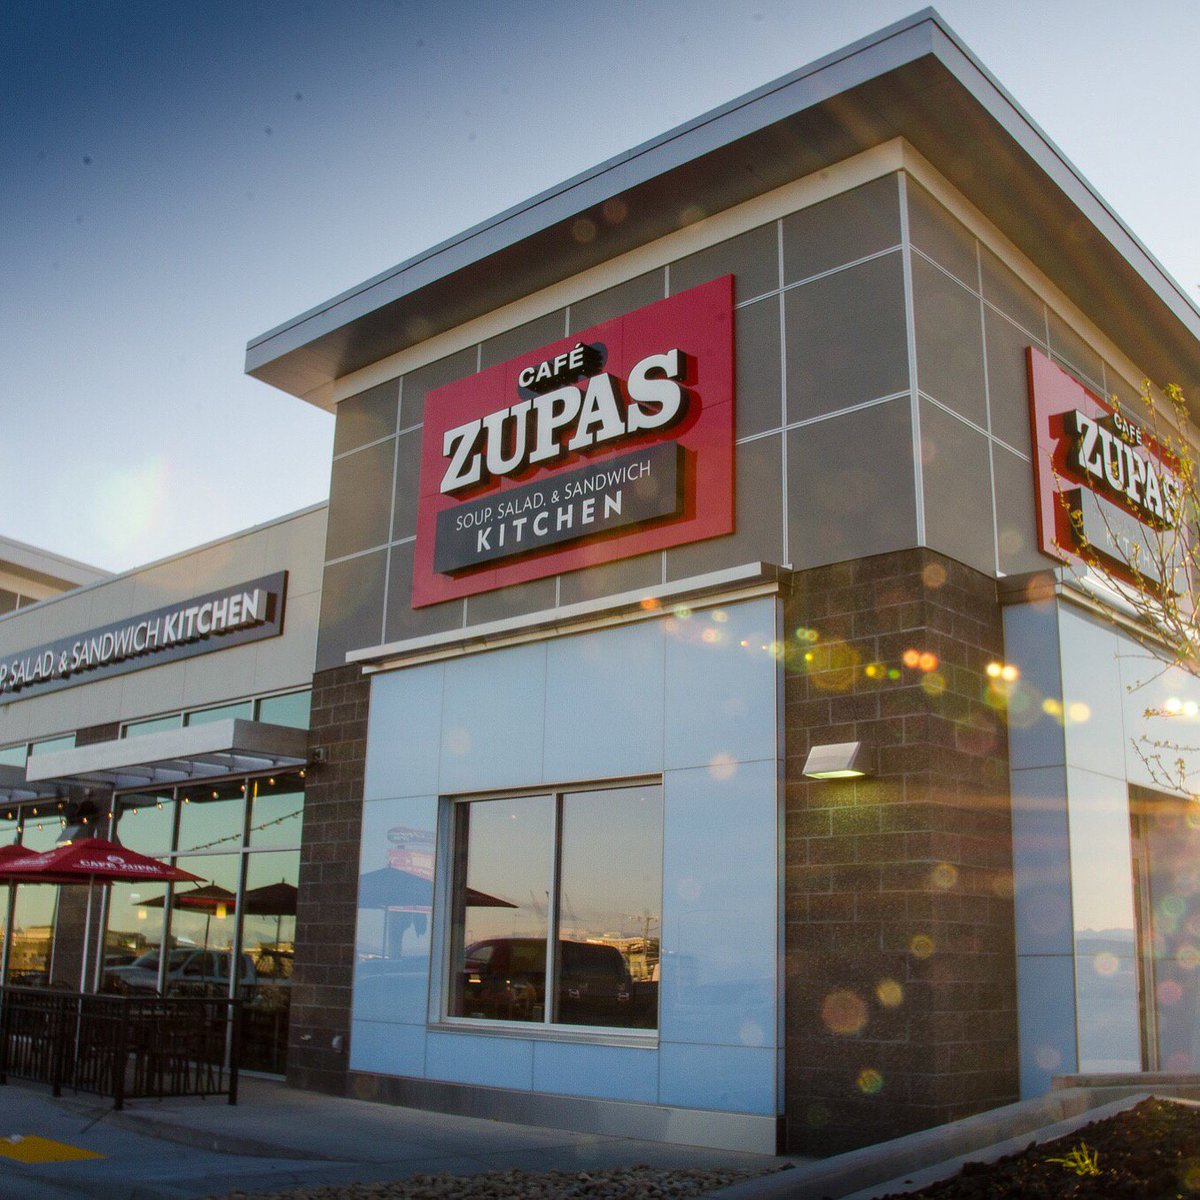 Cafe Zupas On Twitter Today We Will Be Closing At 3pm To Allow Our